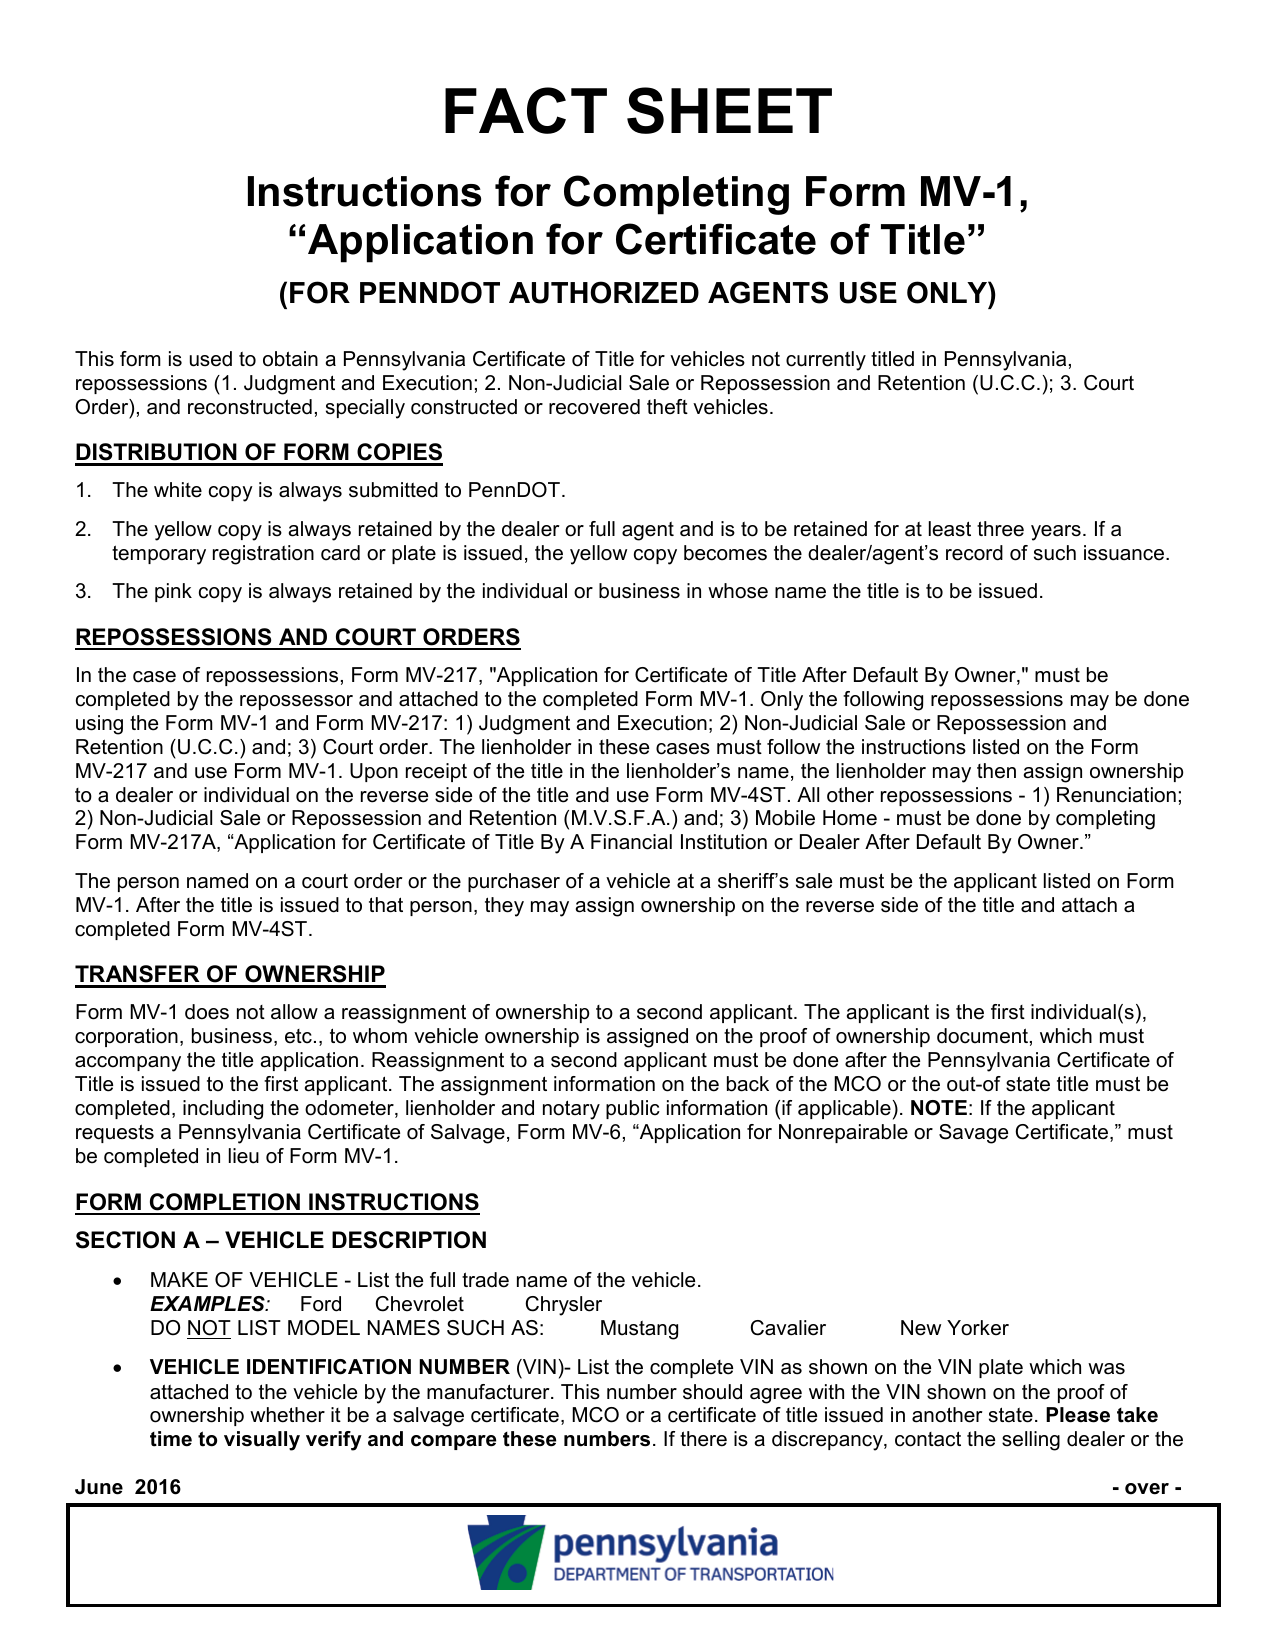 PennDOT Fact Sheet - Instructions for Completing Form MV-1